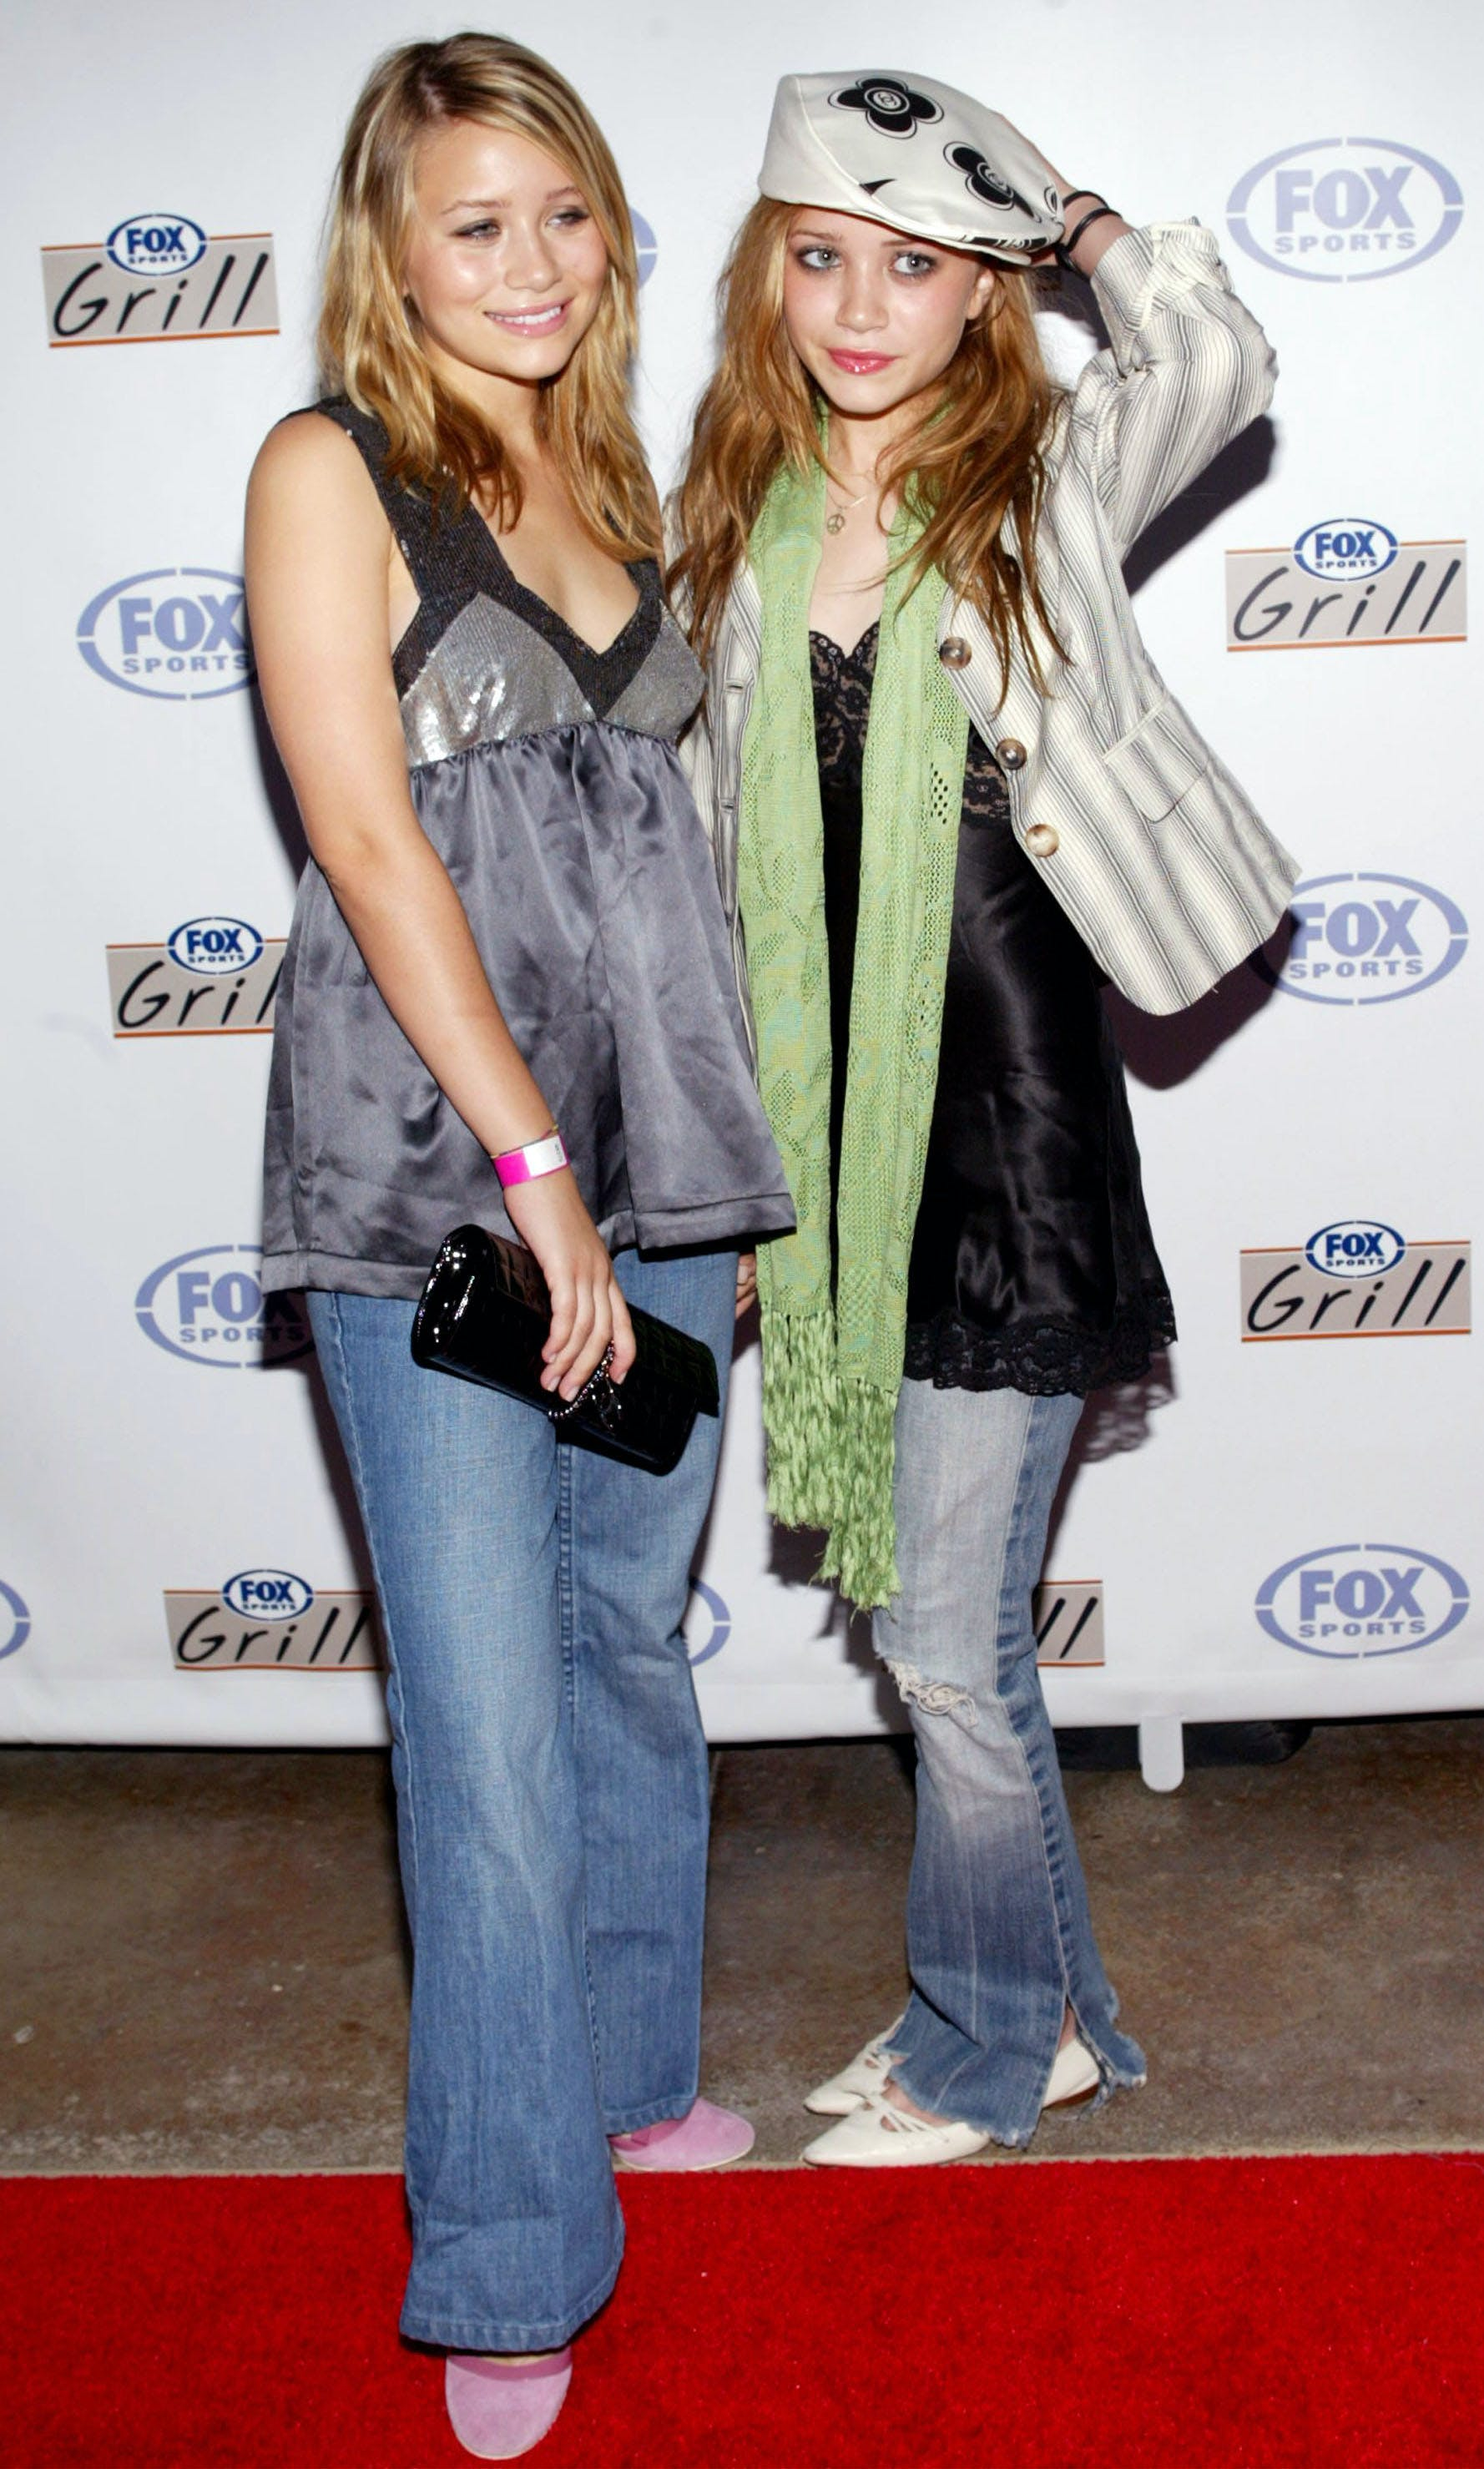 mary kate and ashley olsen wearing questionable outfits in 2003